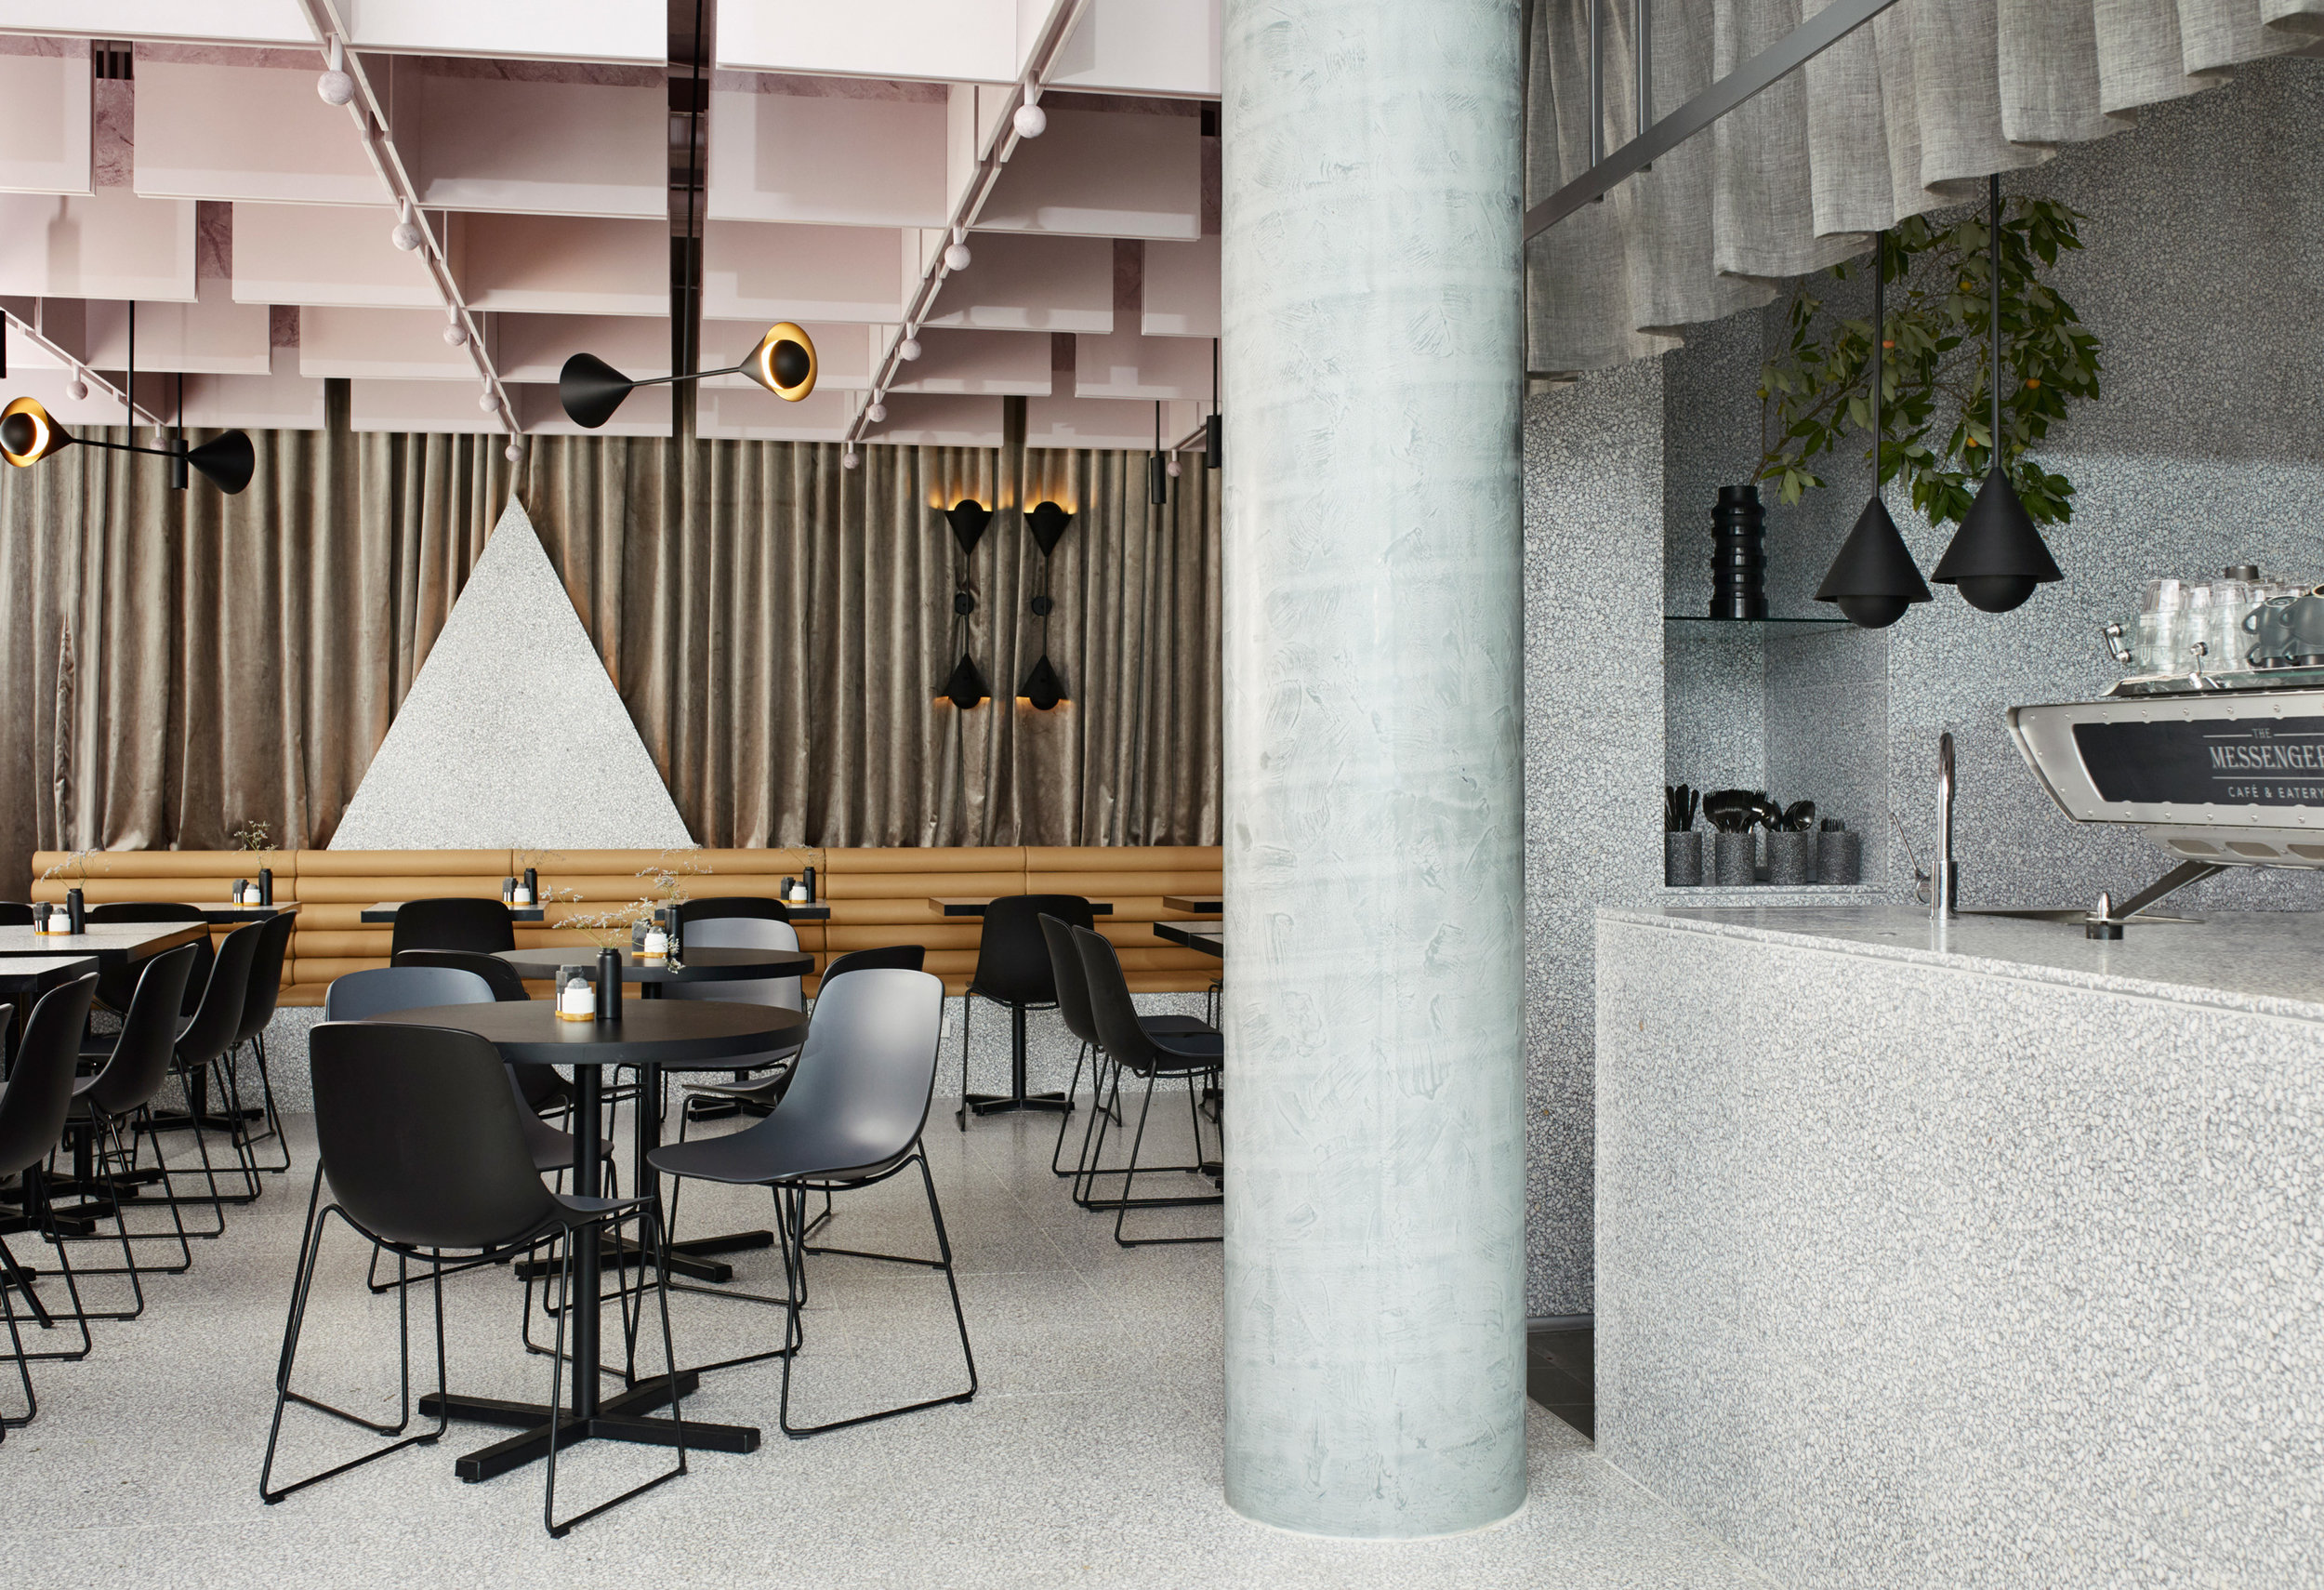 Messenger_Cafe_Sydney_Interior_Design_08.jpg